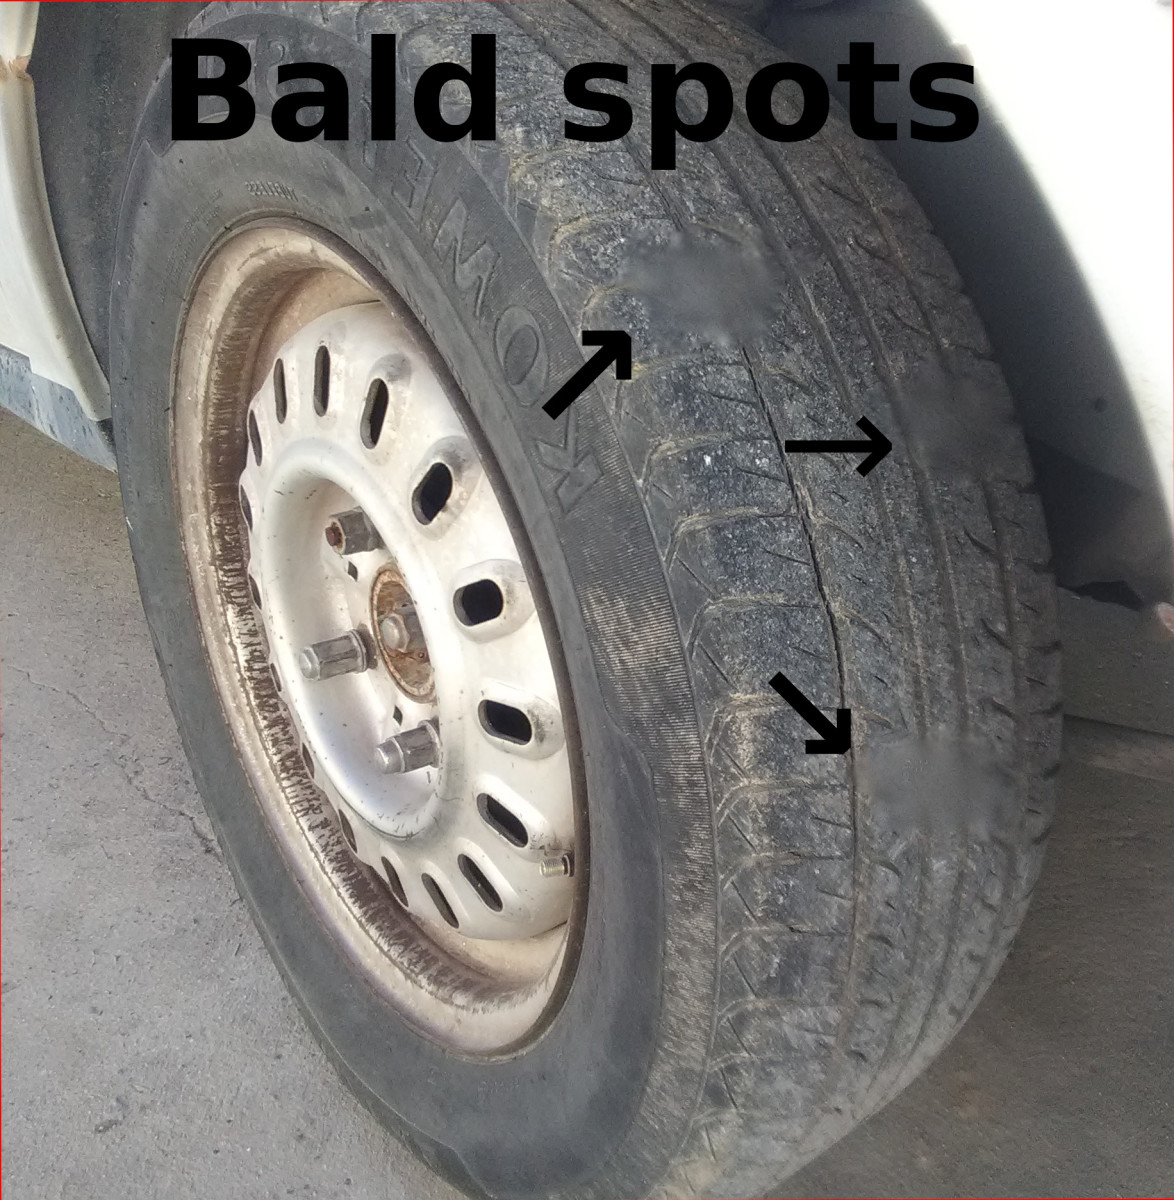 A tire/wheel in need of balance can cause bald spots if not corrected on time.